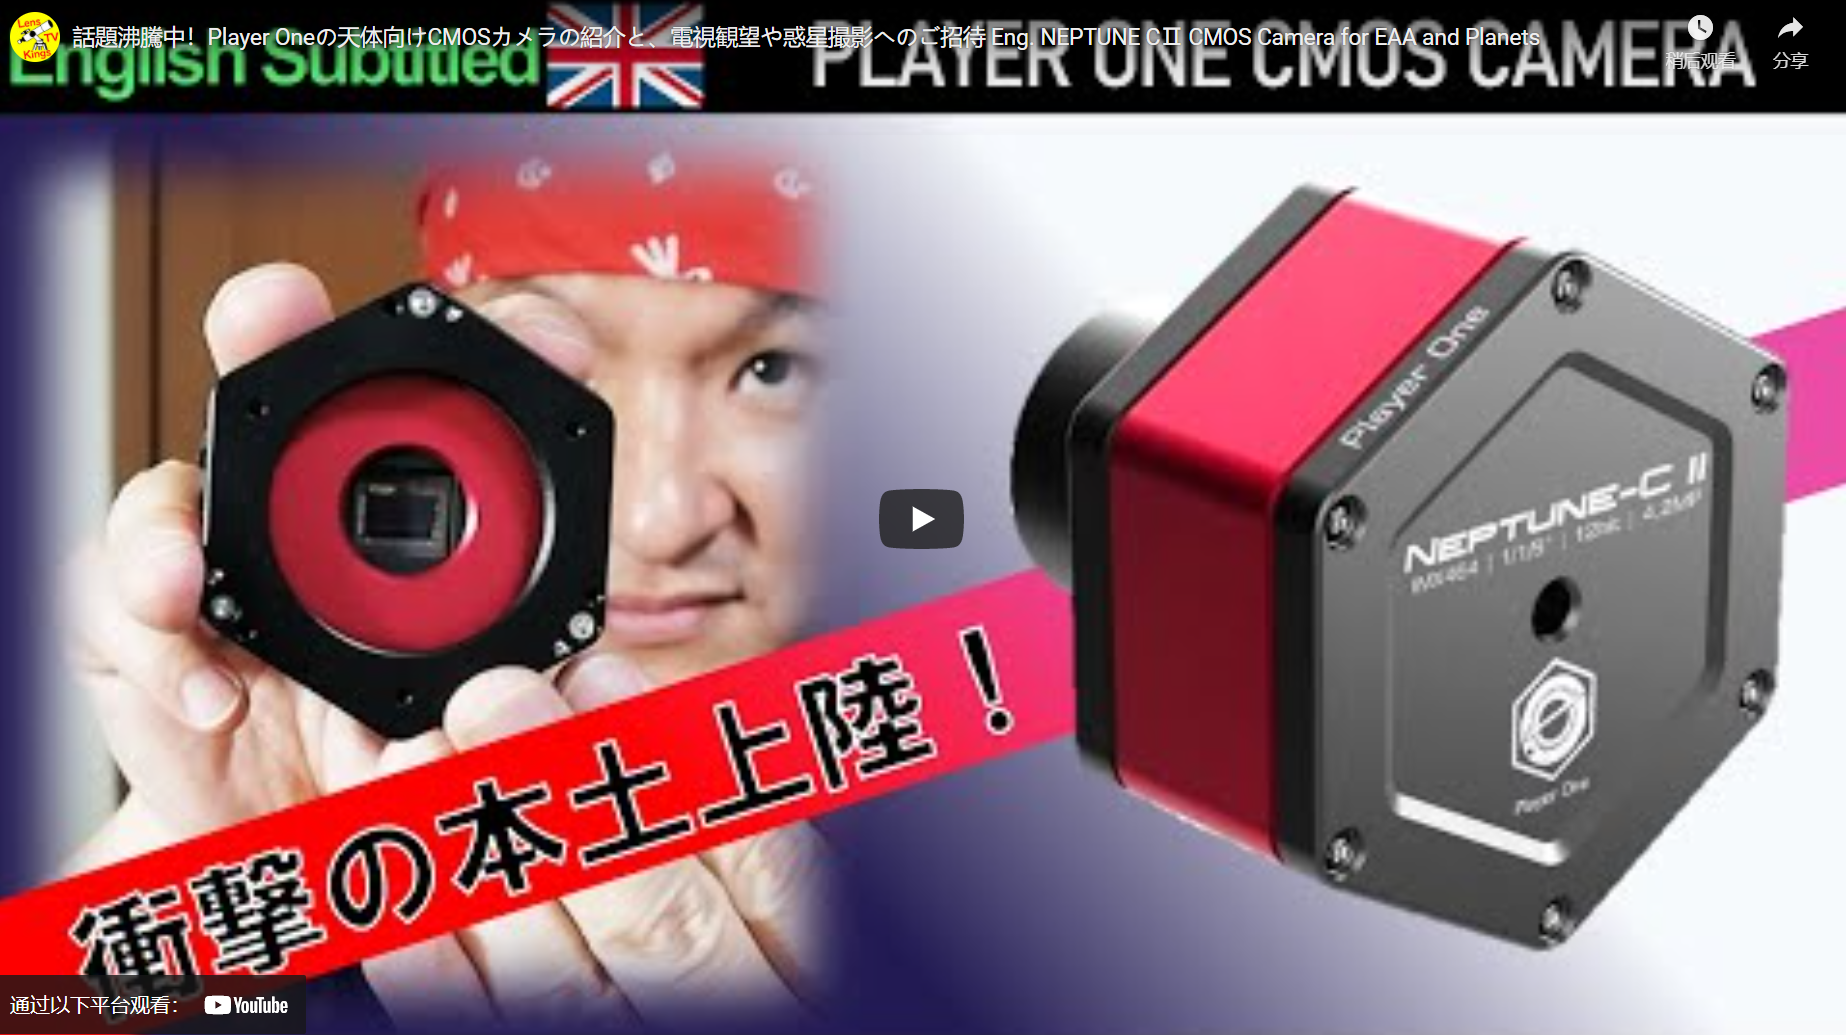 Bosque Rico's review – Player Oneの天体向けCMOSカメラの紹介と、電視観望や惑星撮影へのご招待 Eng. Neptune-C II CMOS Camera for EAA and Planets